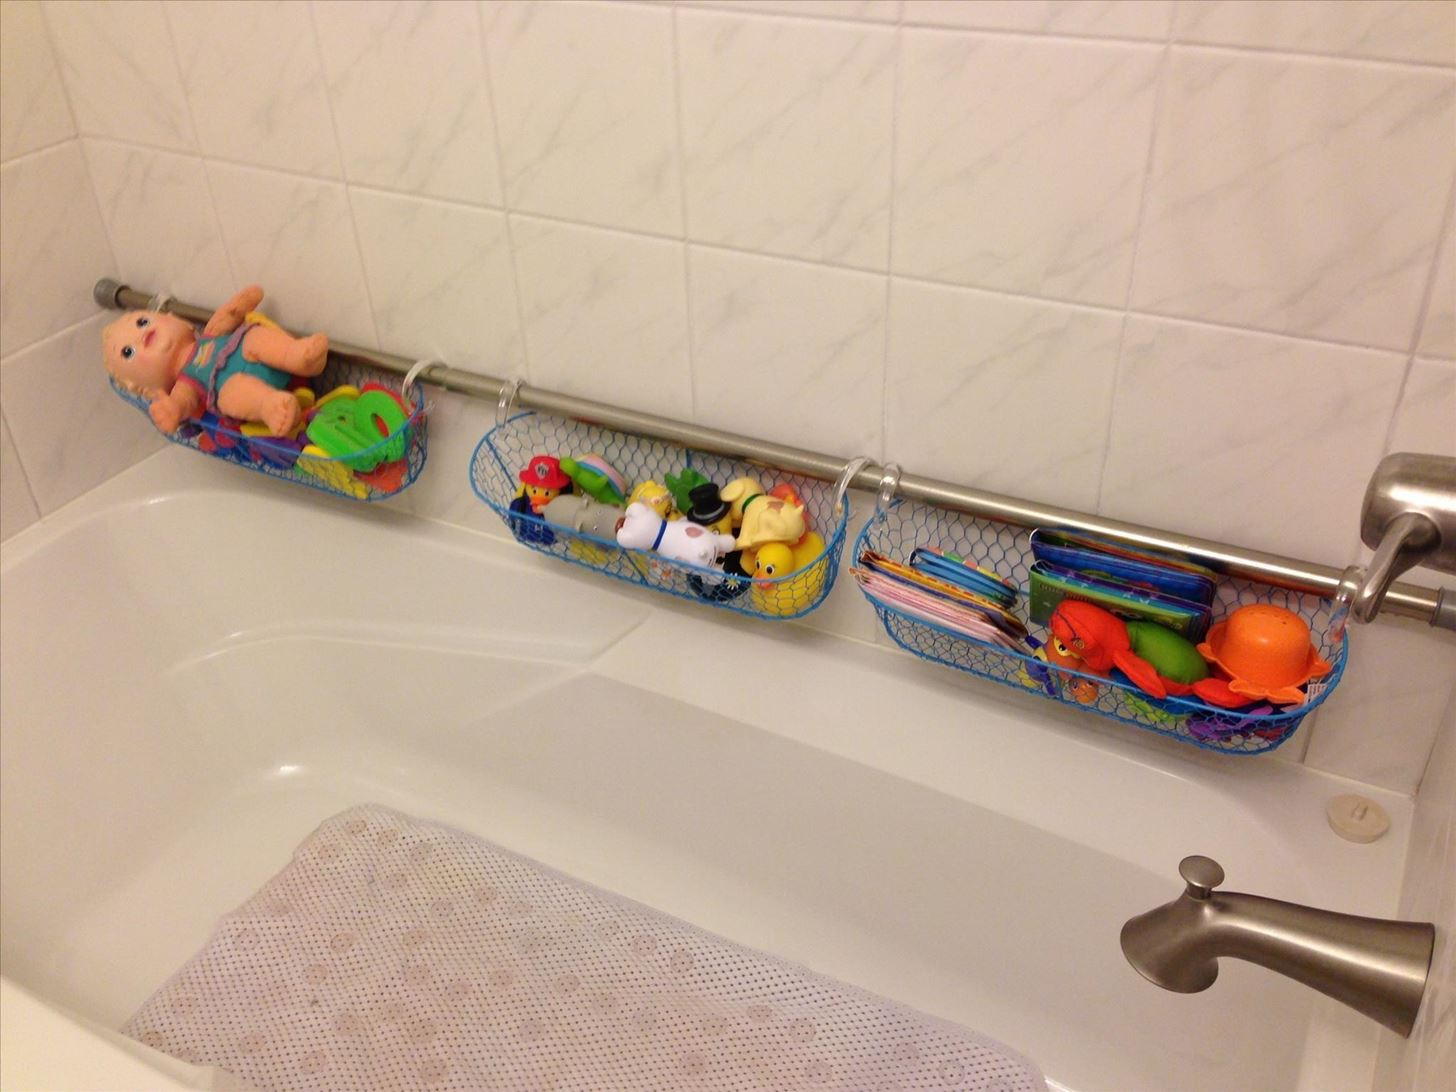 How to use the bathroom com - Use Extra Shower Curtain Rods To Increase Bathroom Storage More Macgyverisms Wonderhowto